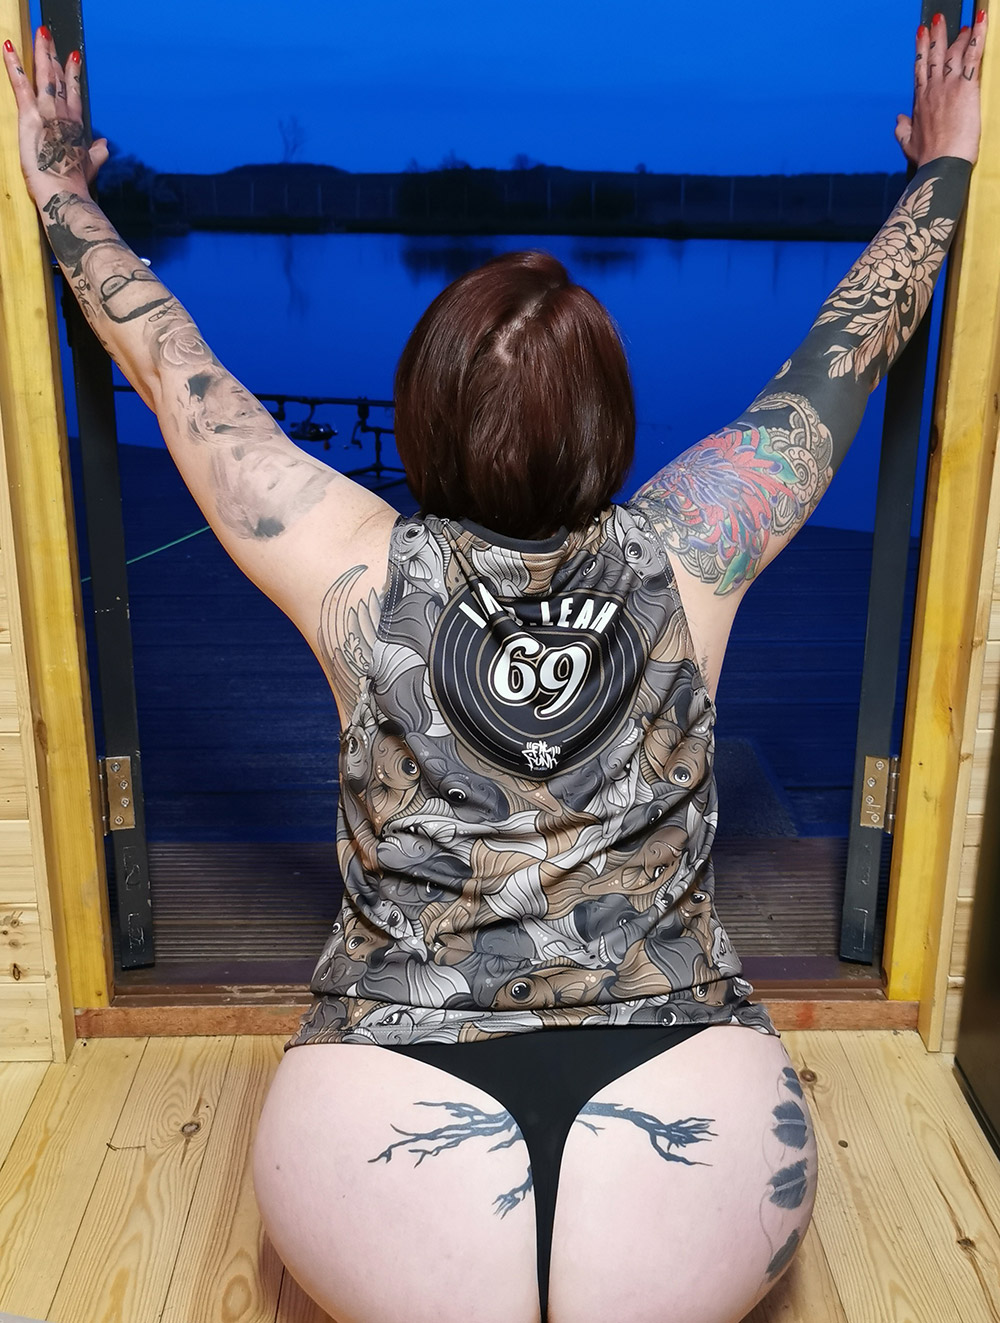 inked-leah-tattooed-alt-model-fat-punk-studio-18